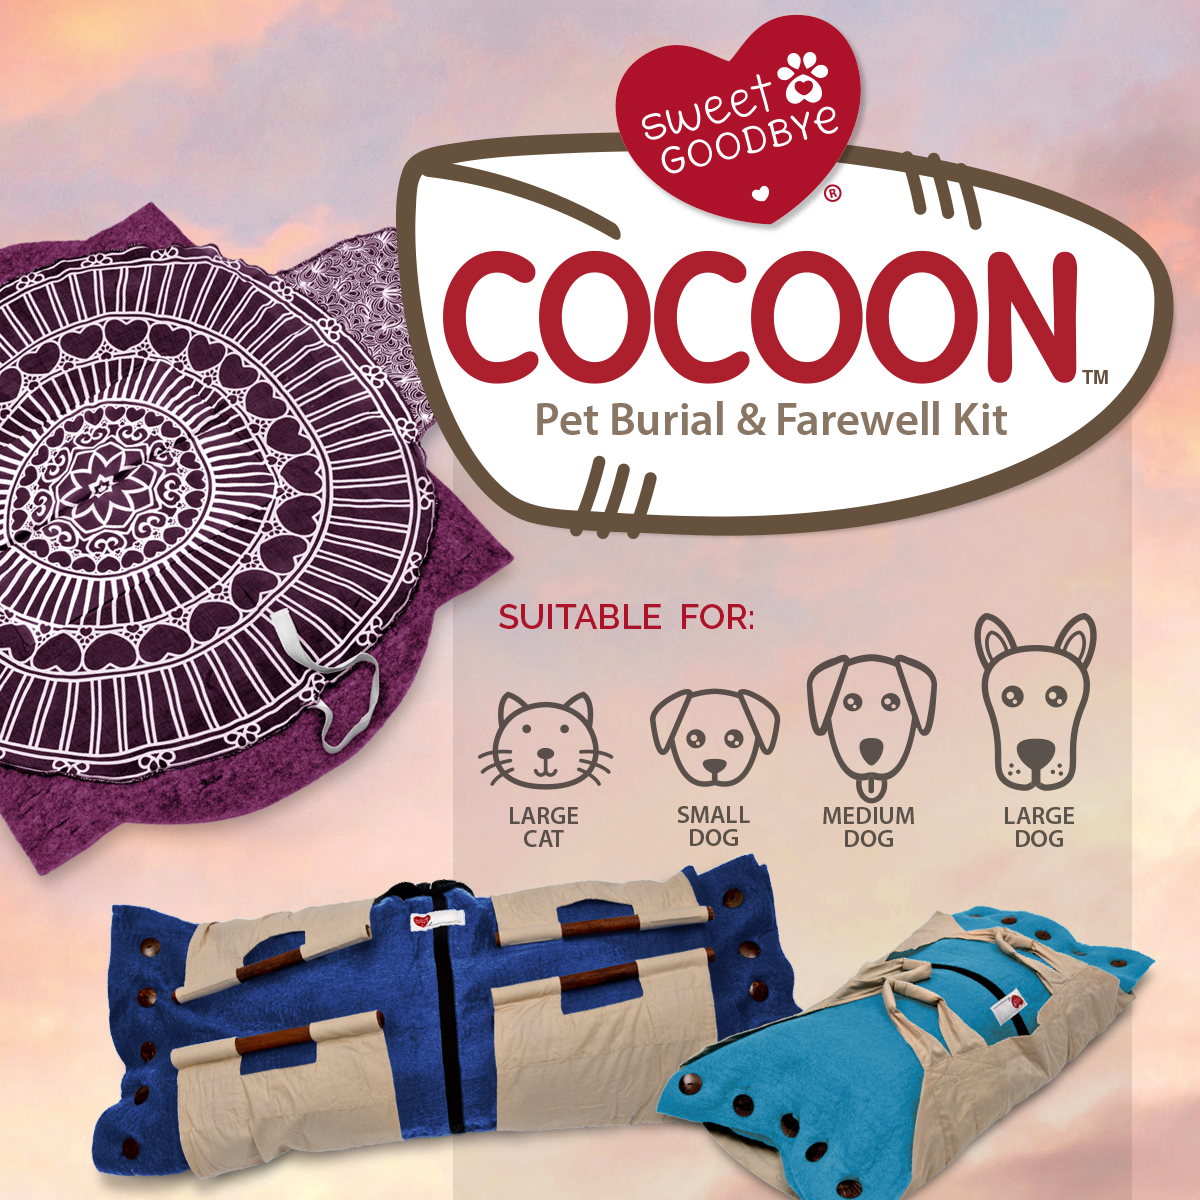 Cocoon Pet Burial and Farewell Kit - Small to Very gallery image